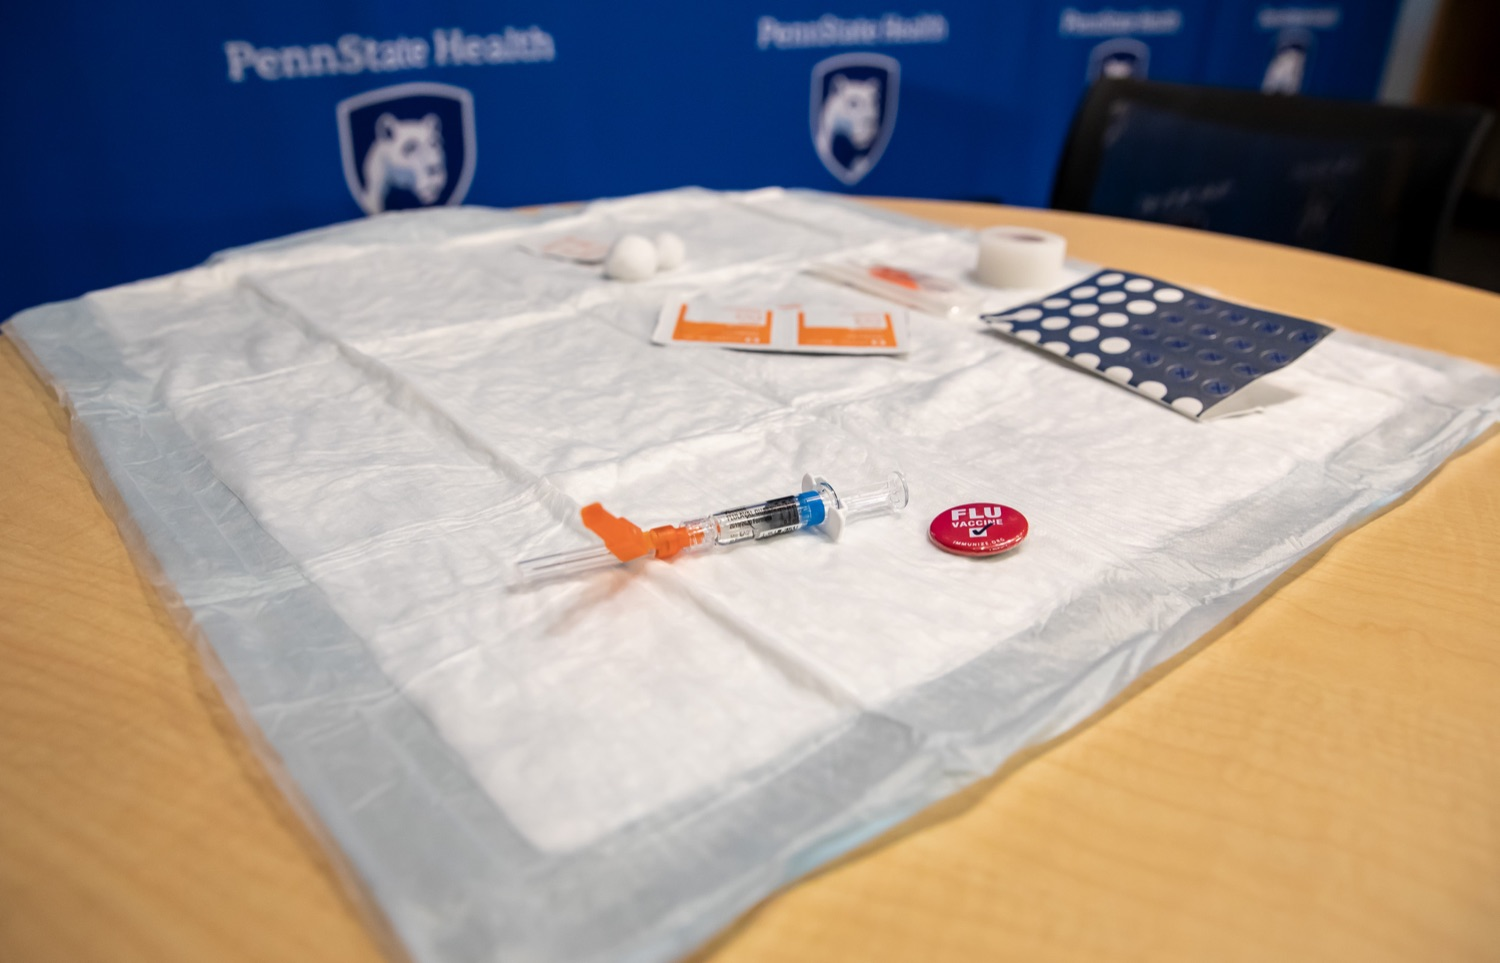 "<a href=""http://filesource.abacast.com/commonwealthofpa/photo/17471_DOH_FluSeason_AG_05.jpg"" target=""_blank"">⇣ Download Photo<br></a>Harrisburg, PA.  At an event at the Penn State Health Milton S. Hershey Medical Center today, the Department of Health reminded residents that it is time to get their flu vaccine, as flu season officially starts this month and runs until May. Secretary of Health Dr. Rachel Levine encouraged residents to get their flu vaccine before the end of October and offered important tips to stay healthy during flu season.  October 8, 2019."